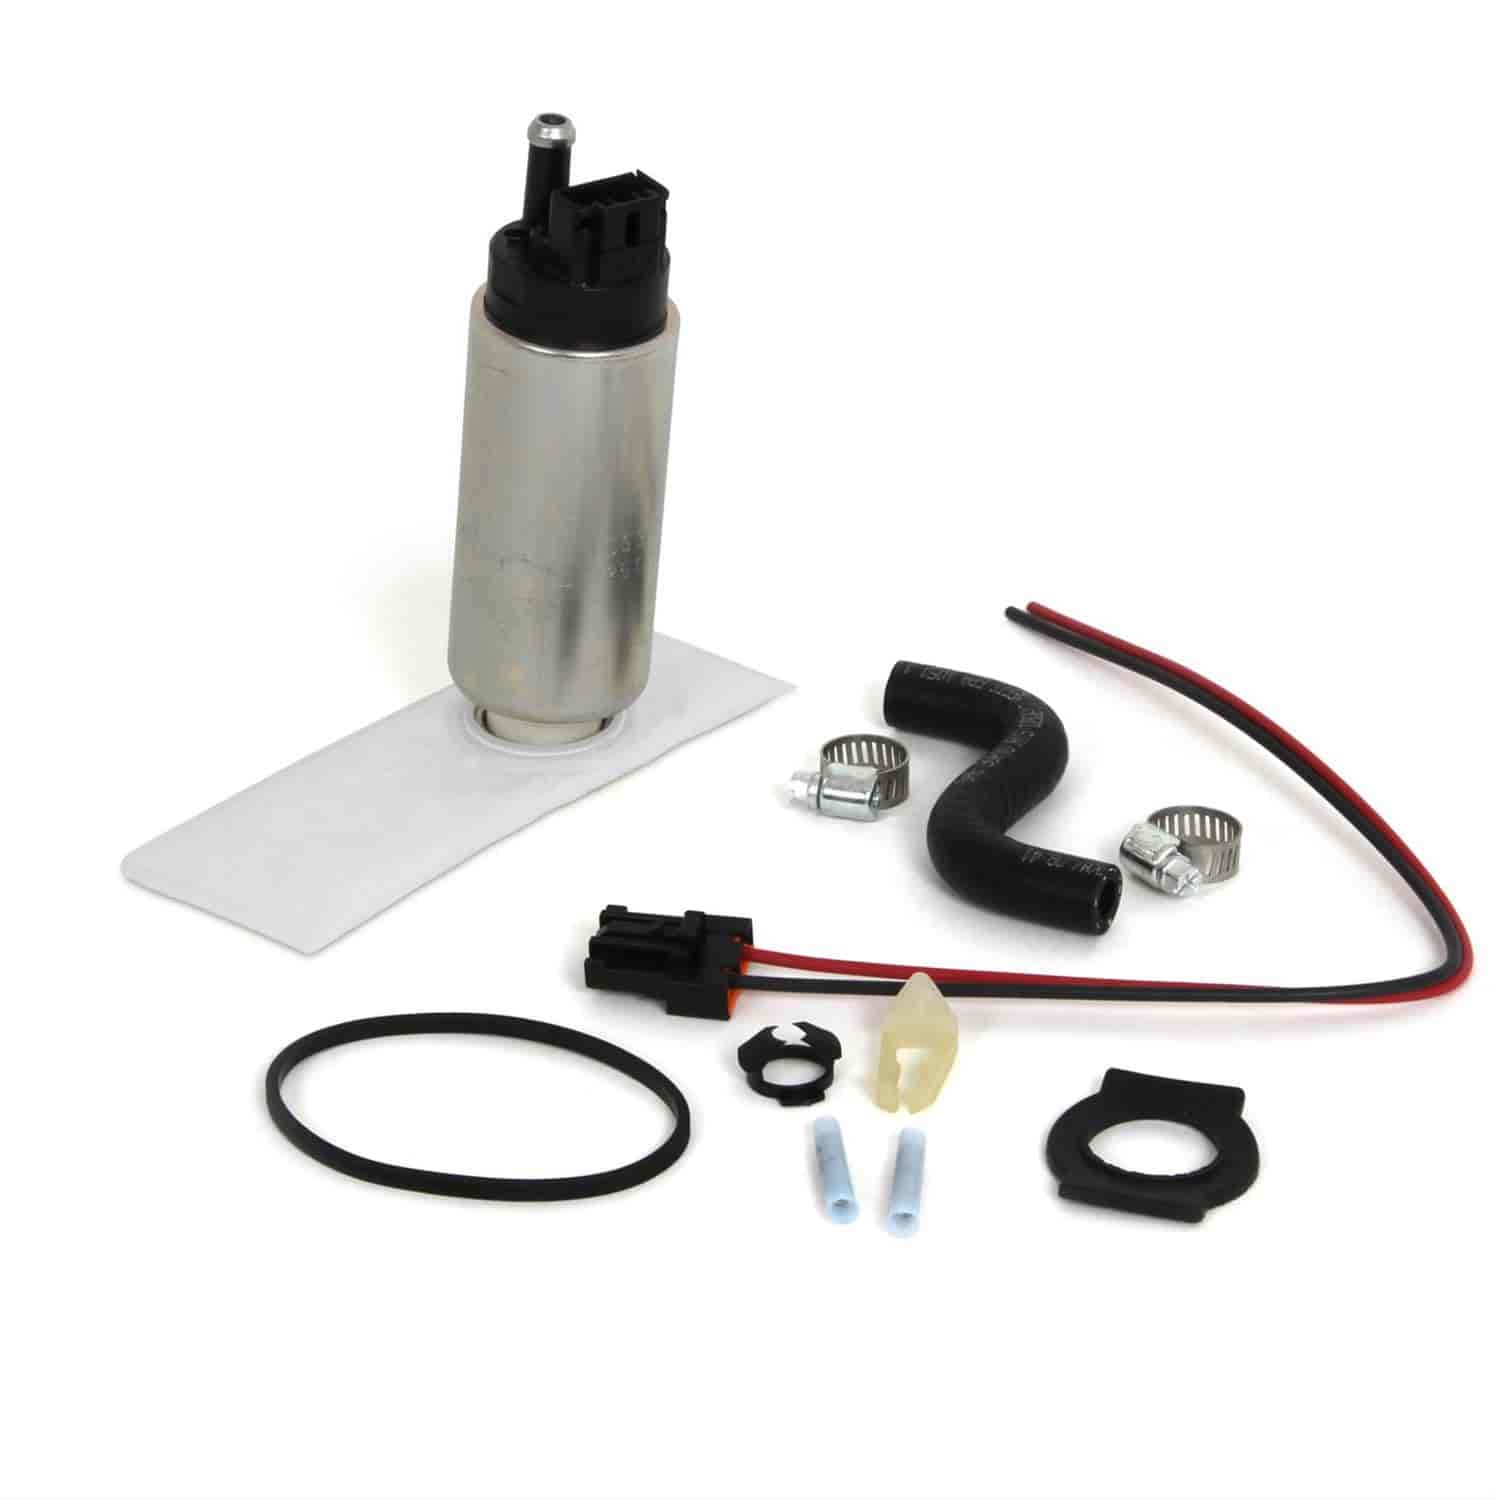 BBK Performance Products 1606 - BBK High-Volume OEM Style Electric Fuel Pump Kits